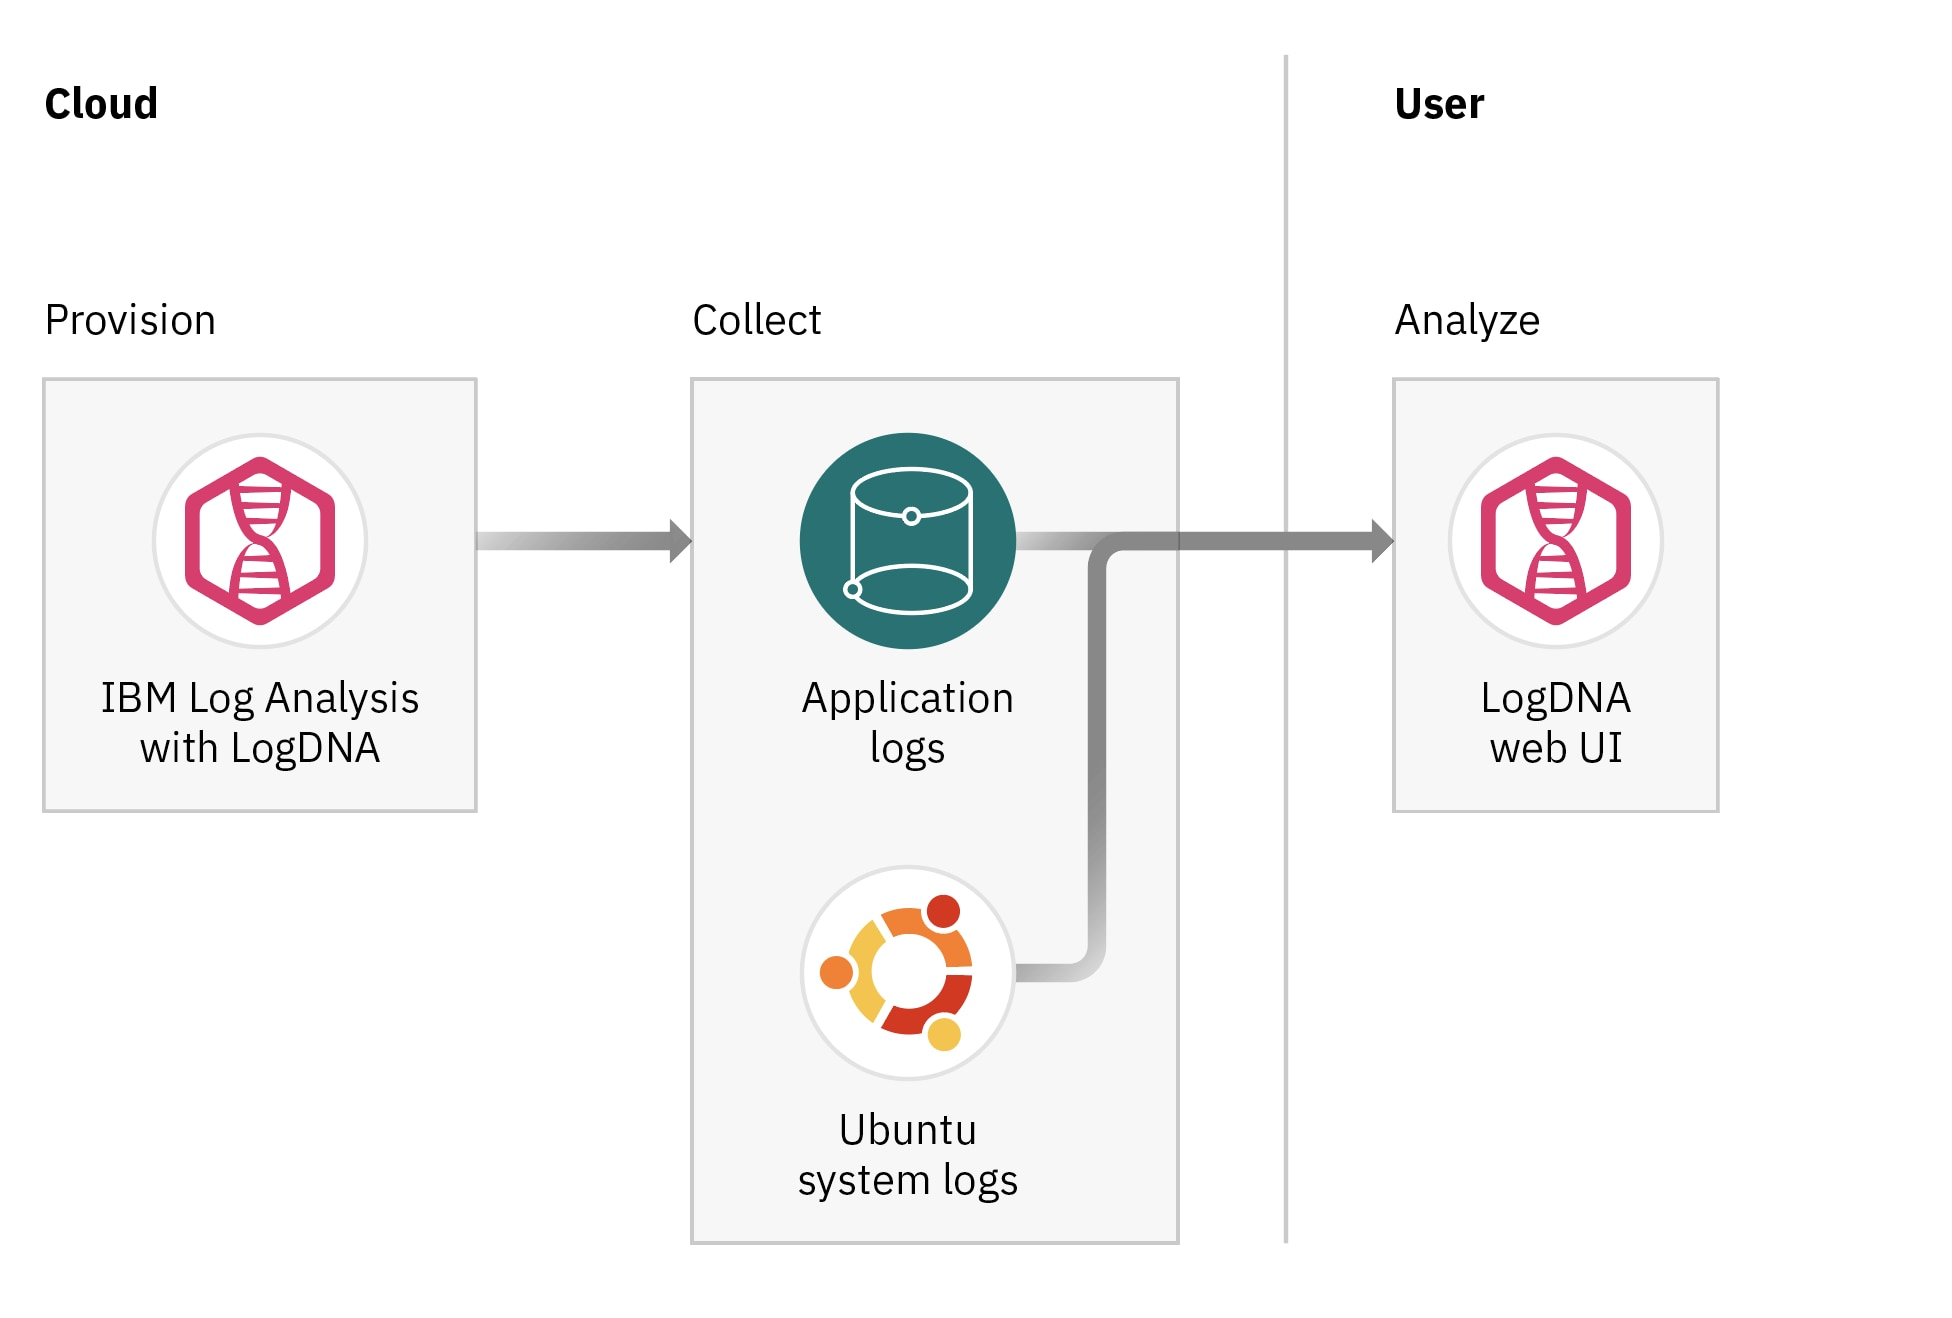 Architectural diagram for managing Ubuntu logs with IBM Cloud Log Analysis.